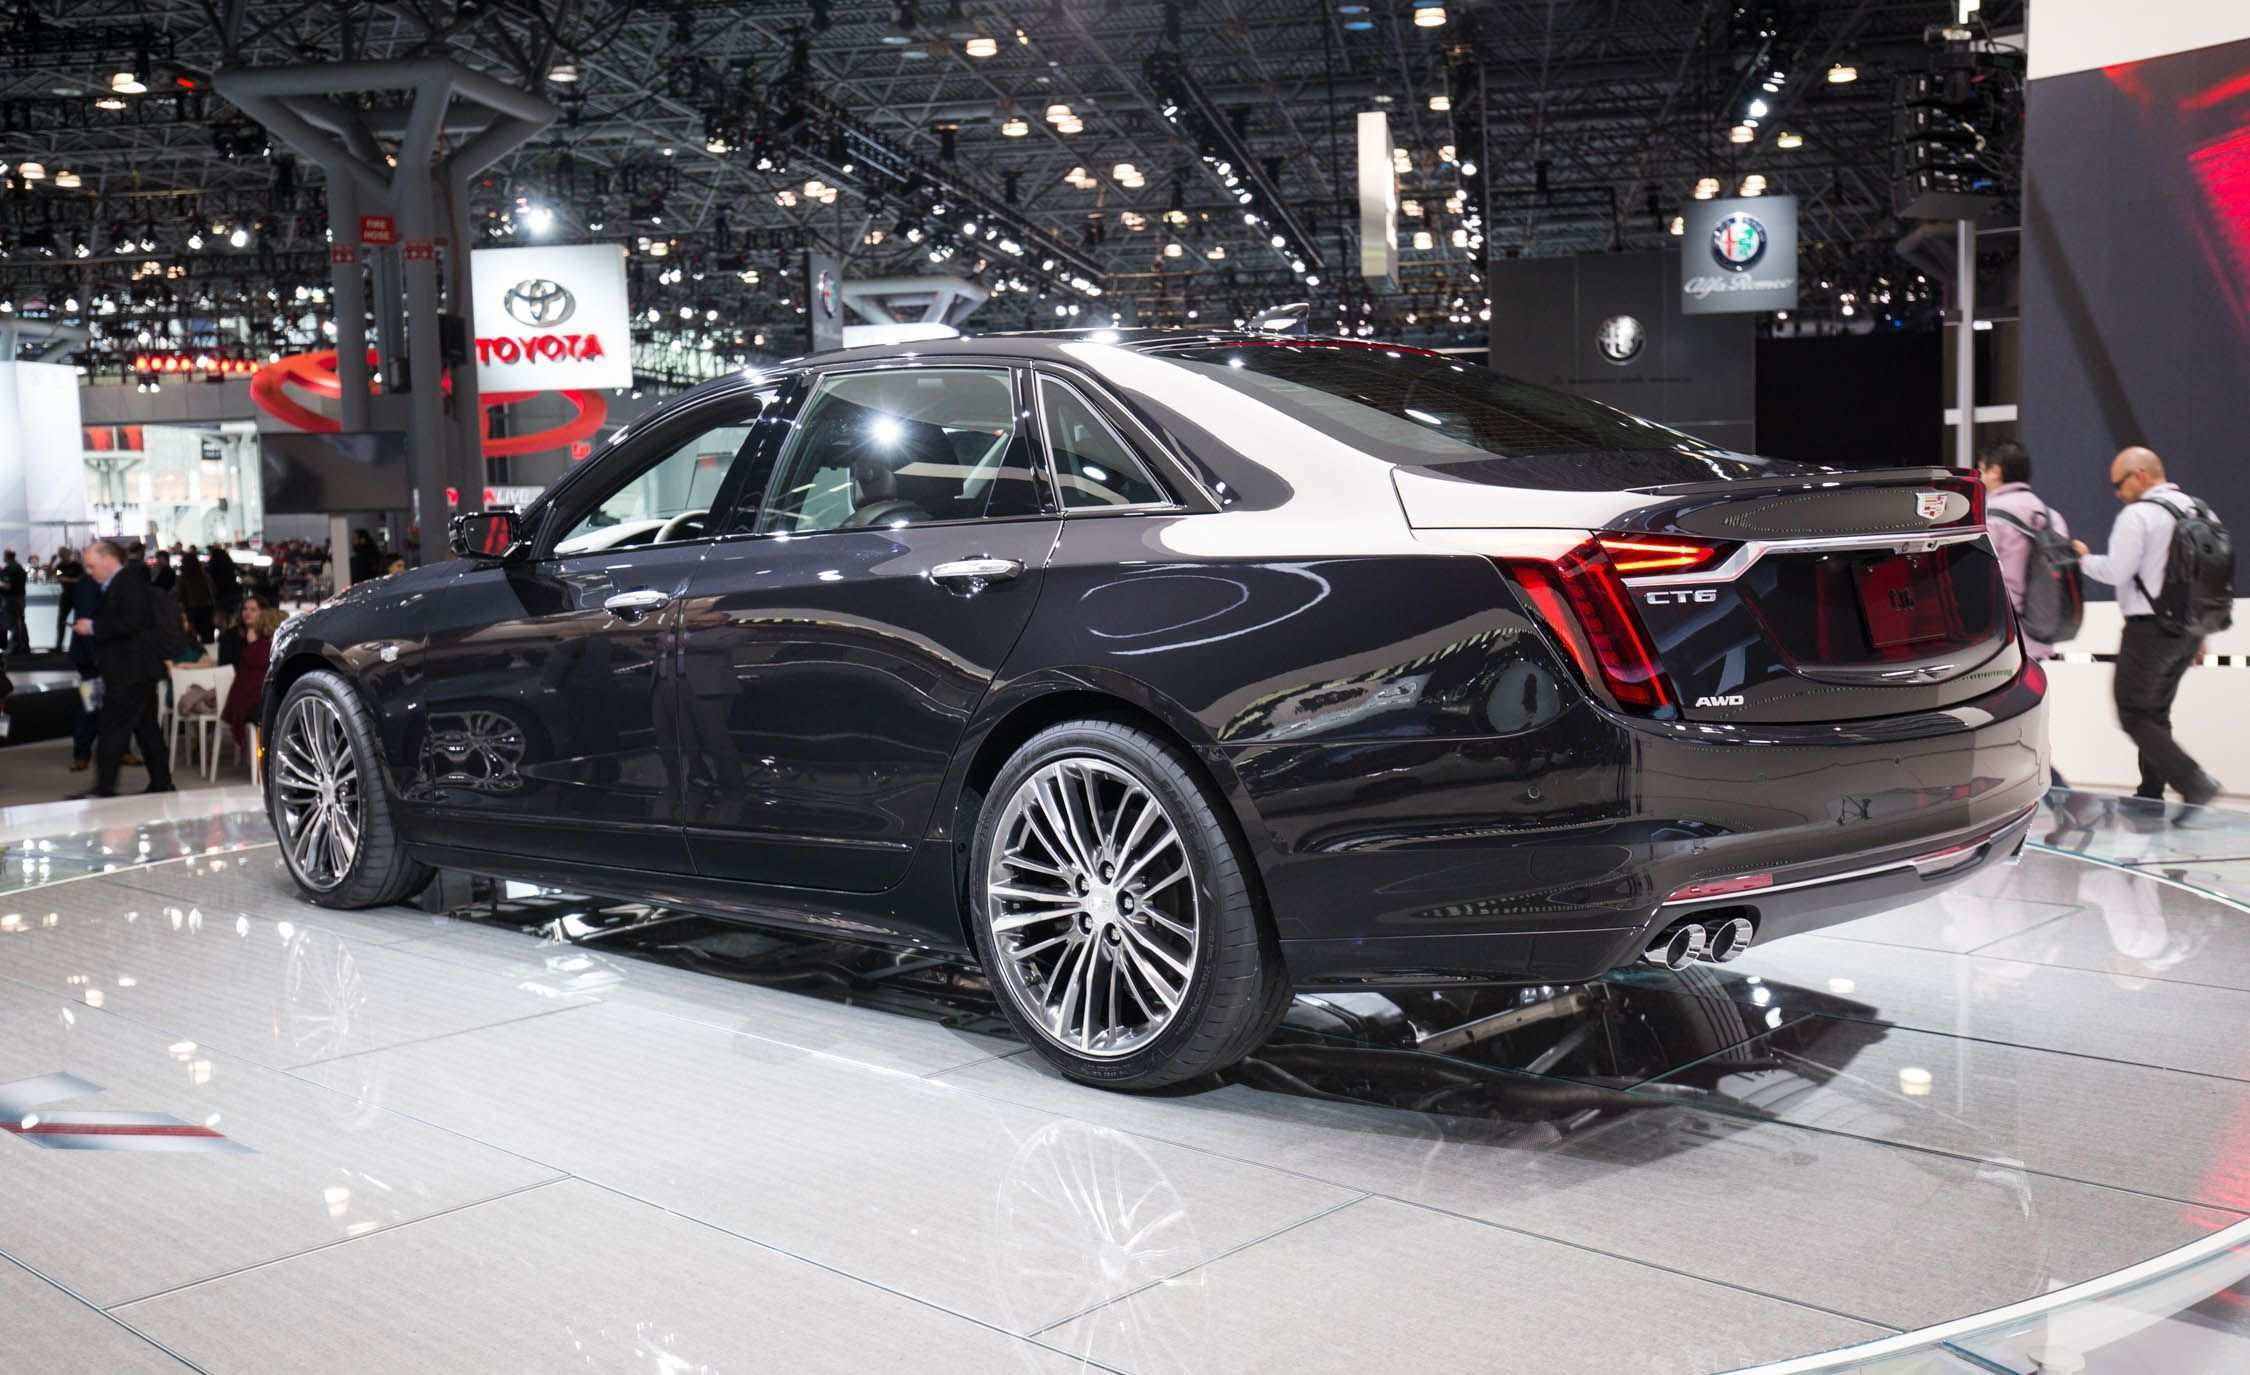 17 Gallery of New Ct6 Cadillac 2019 Price Review And Specs Prices with New Ct6 Cadillac 2019 Price Review And Specs